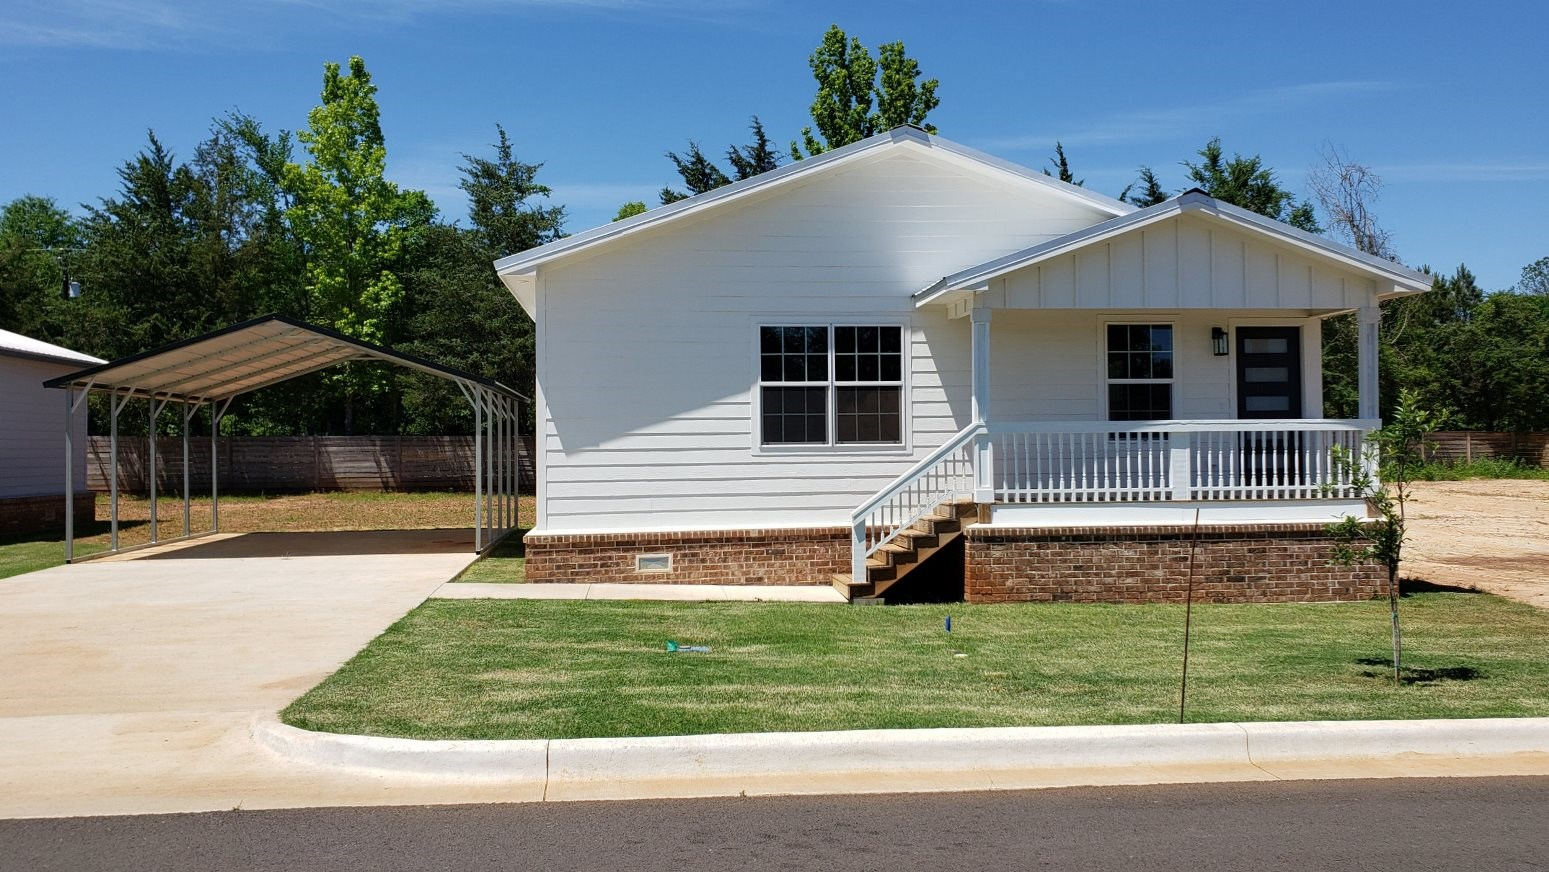 CHARMING NEW ENERGY EFFICIENT HOME FOR SALE PALESTINE TEXAS